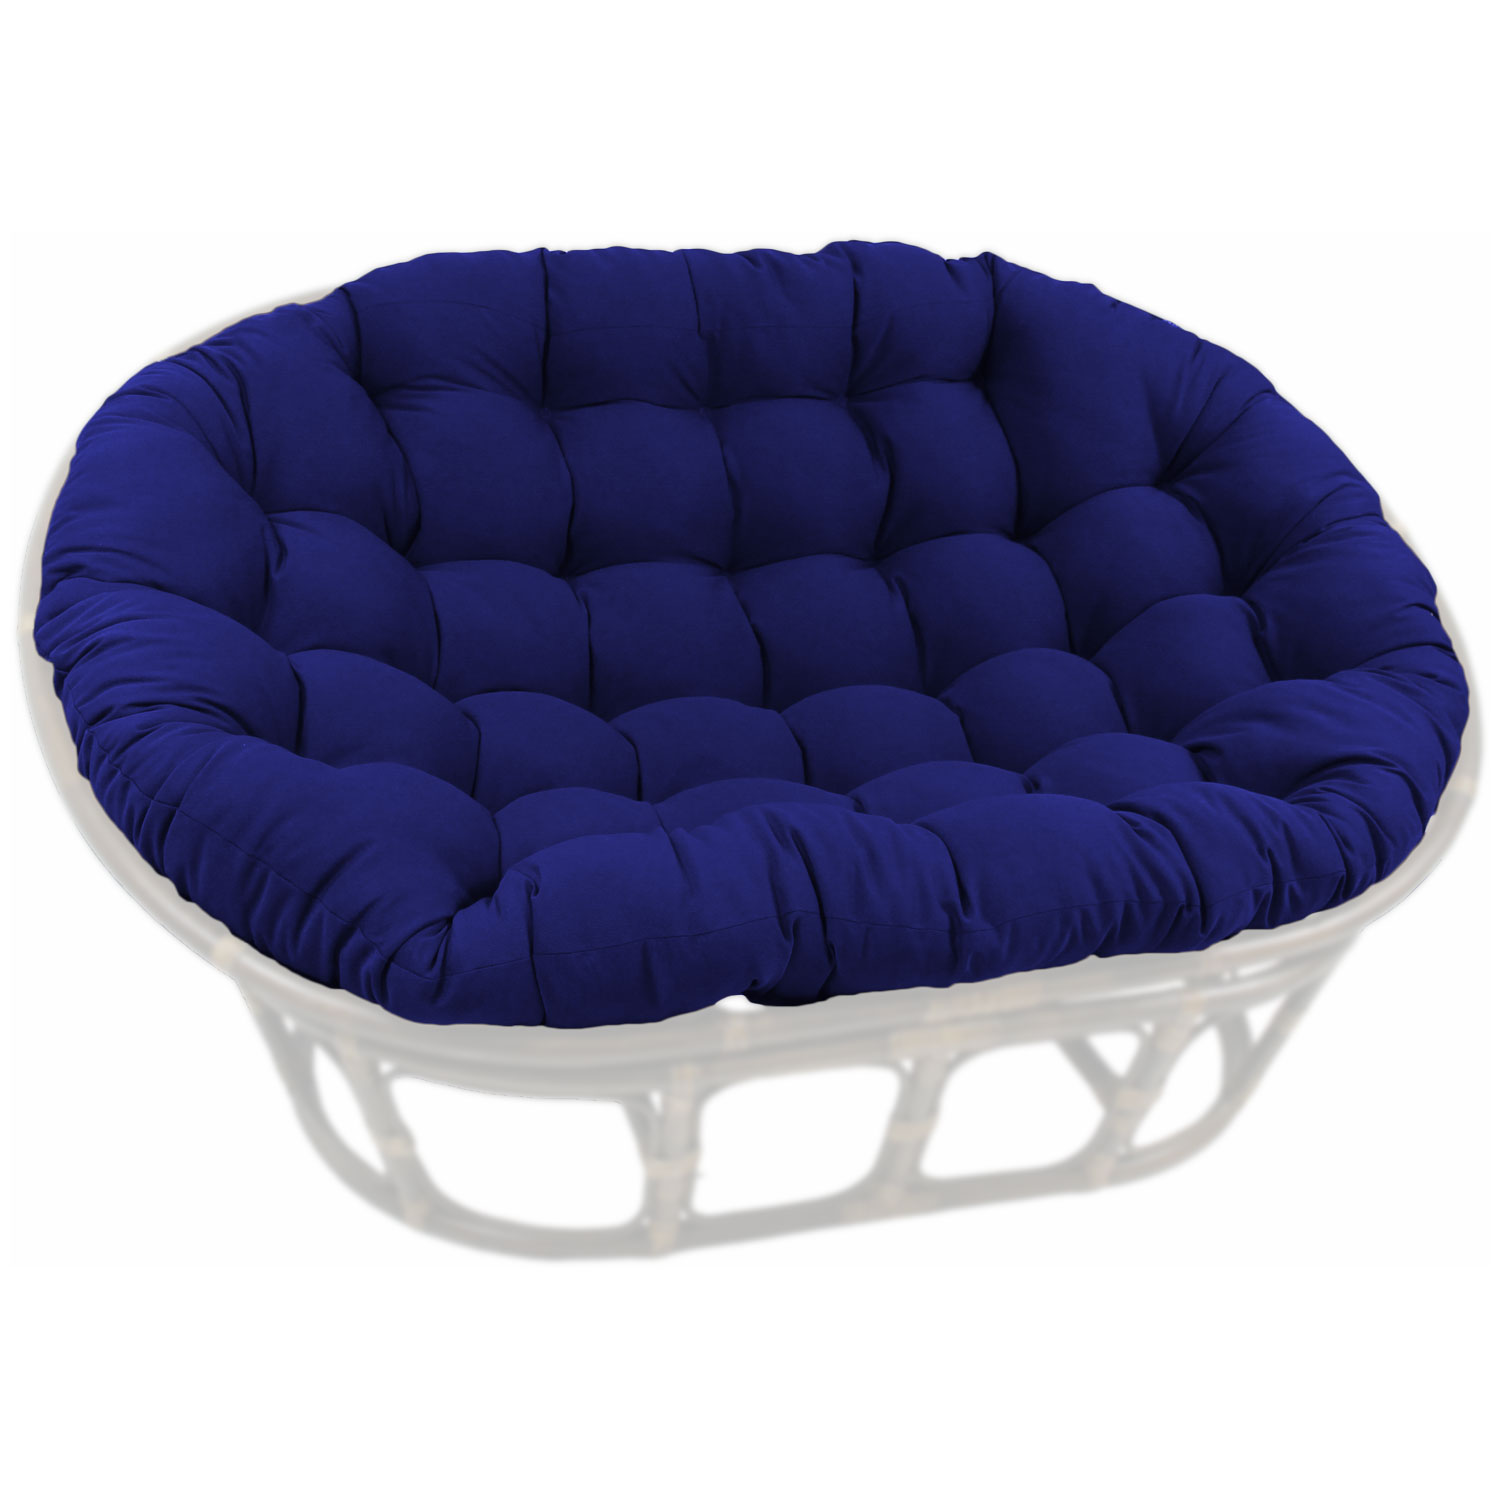 ... papasan chairs ebayfind great deals on ebay for double papasan chairs